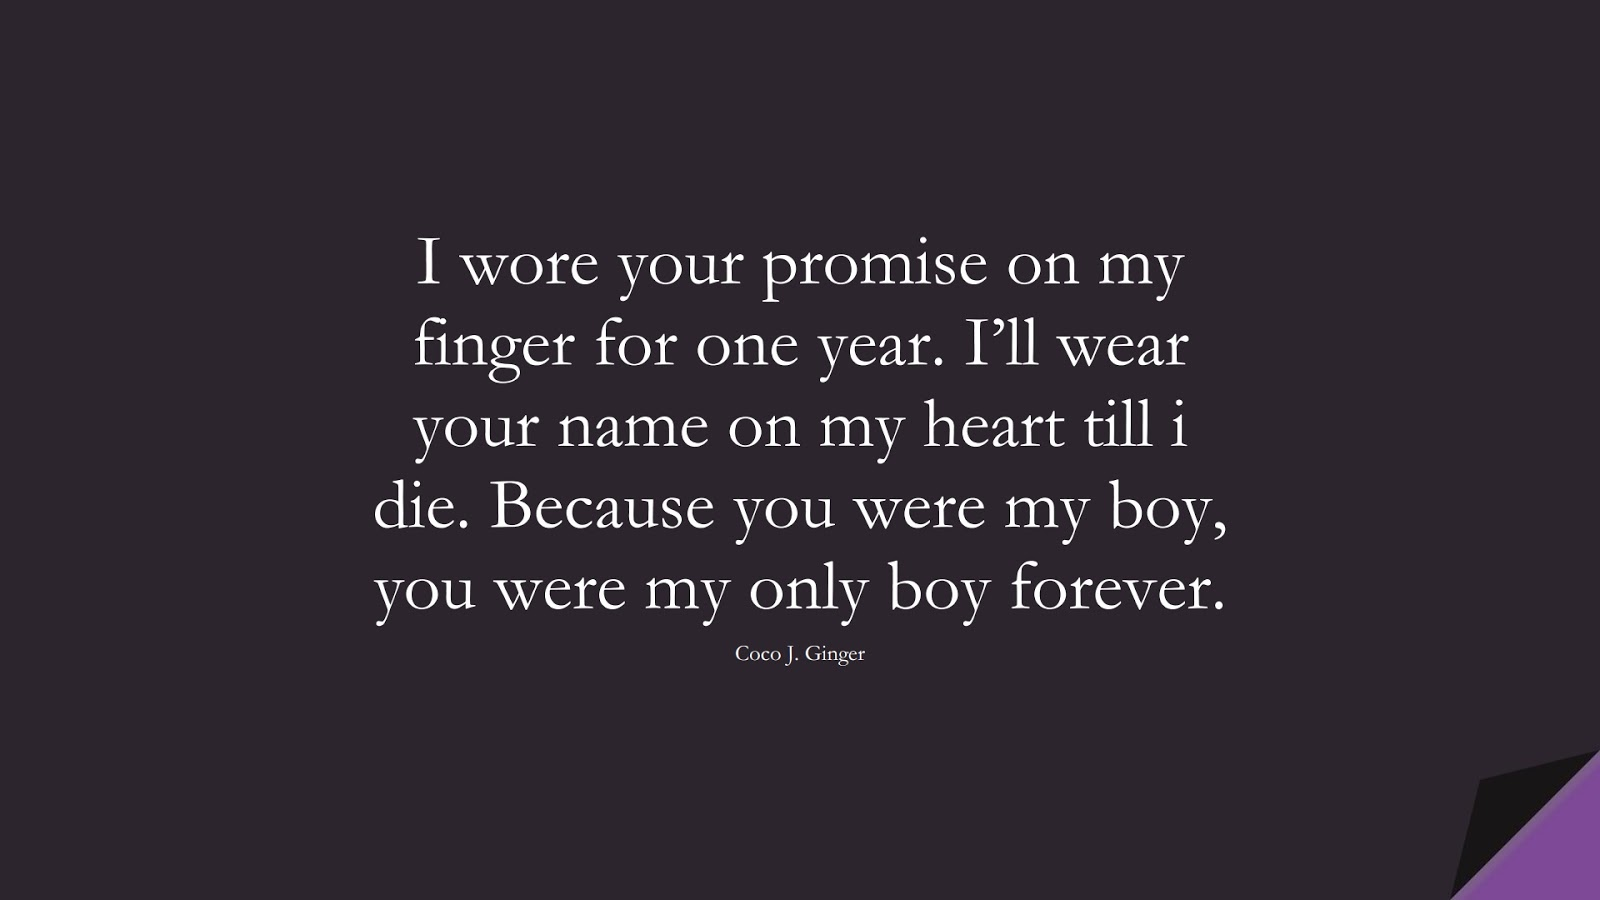 I wore your promise on my finger for one year. I'll wear your name on my heart till i die. Because you were my boy, you were my only boy forever. (Coco J. Ginger);  #SadLoveQuotes